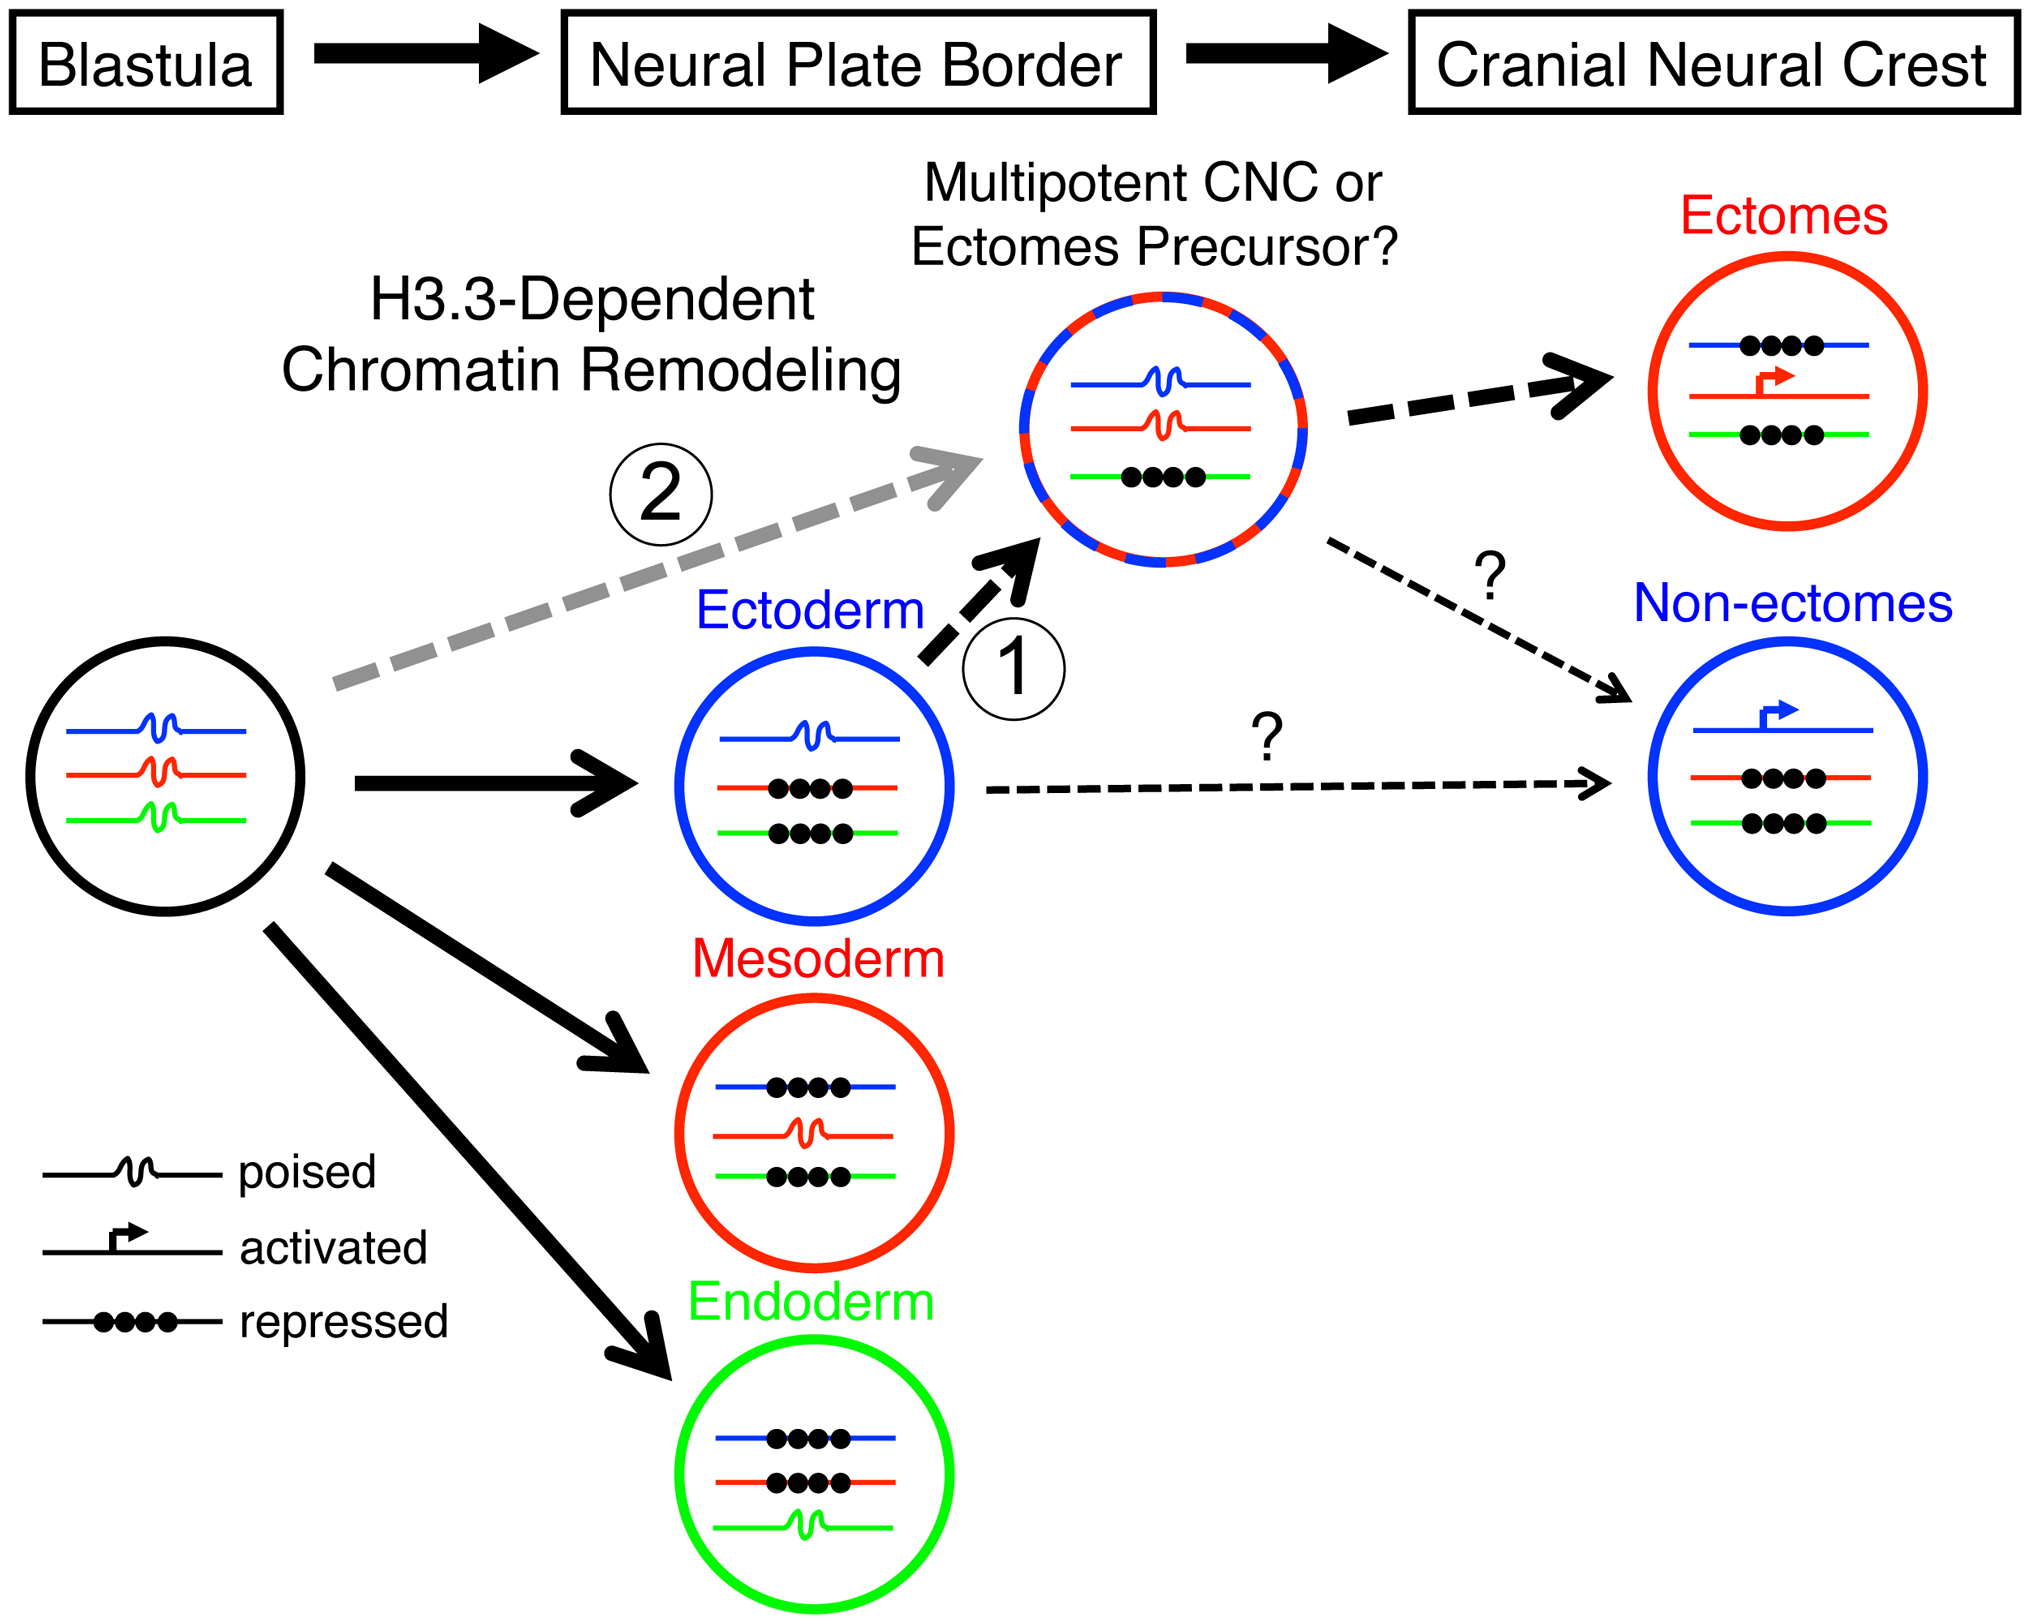 Model for the role of H3.3-dependent histone replacement during CNC development.